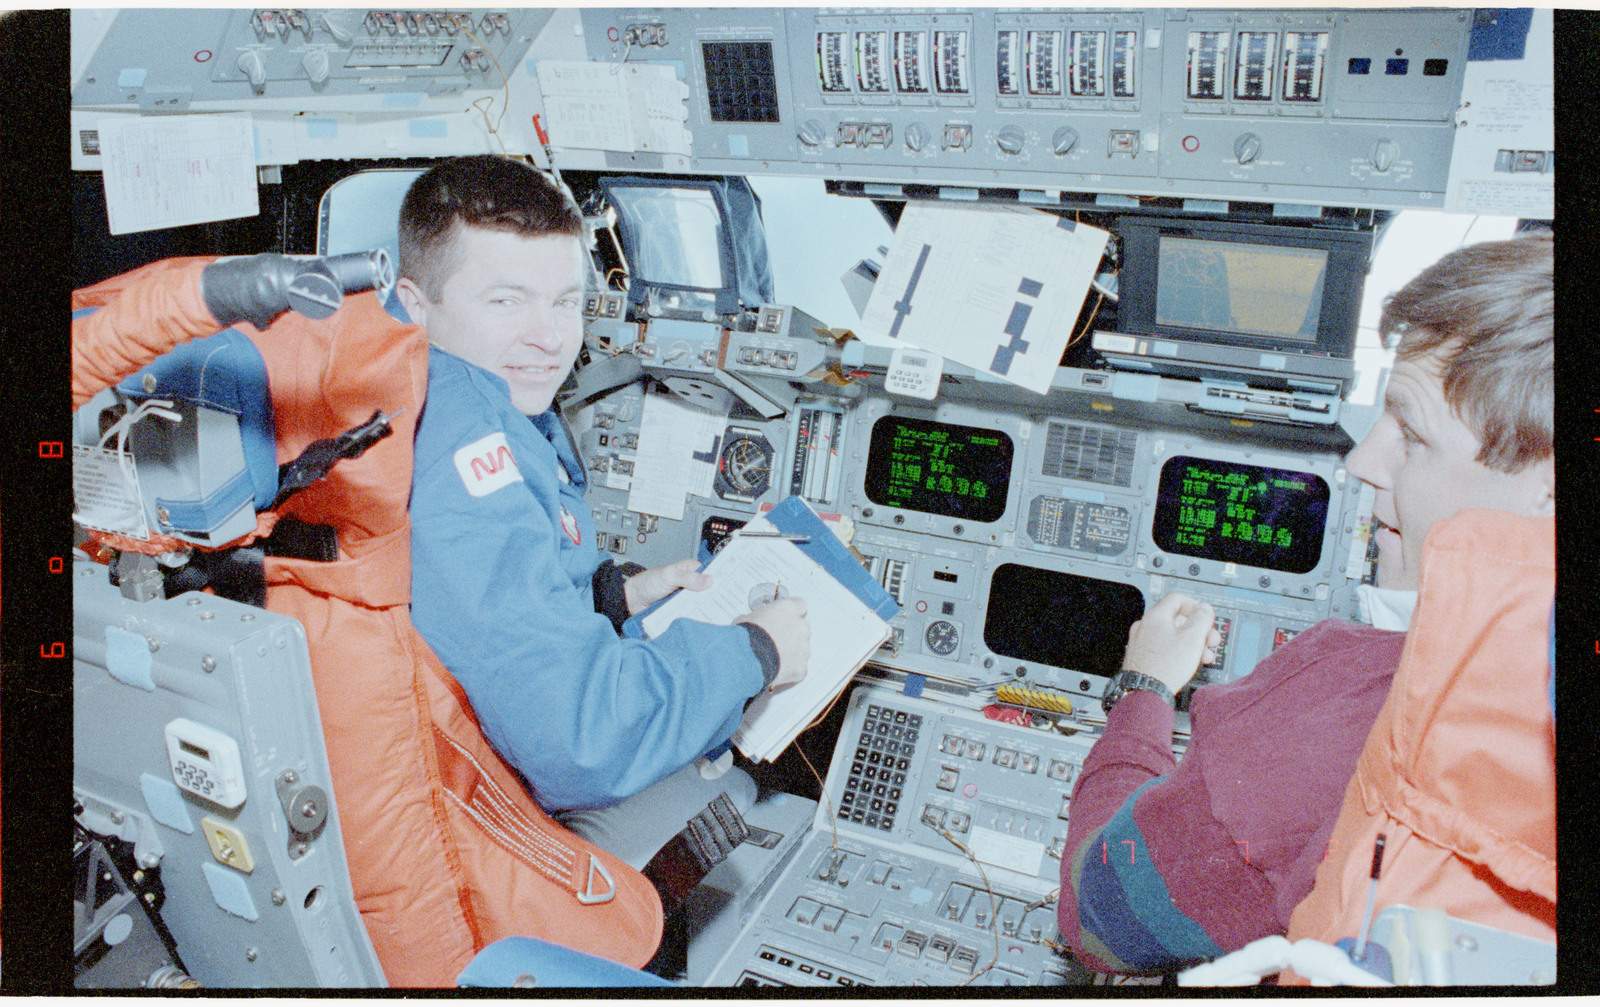 STS056-39-012 - STS-056 - Crewmembers in the fwd flight deck reviewing inflight procedures manual.